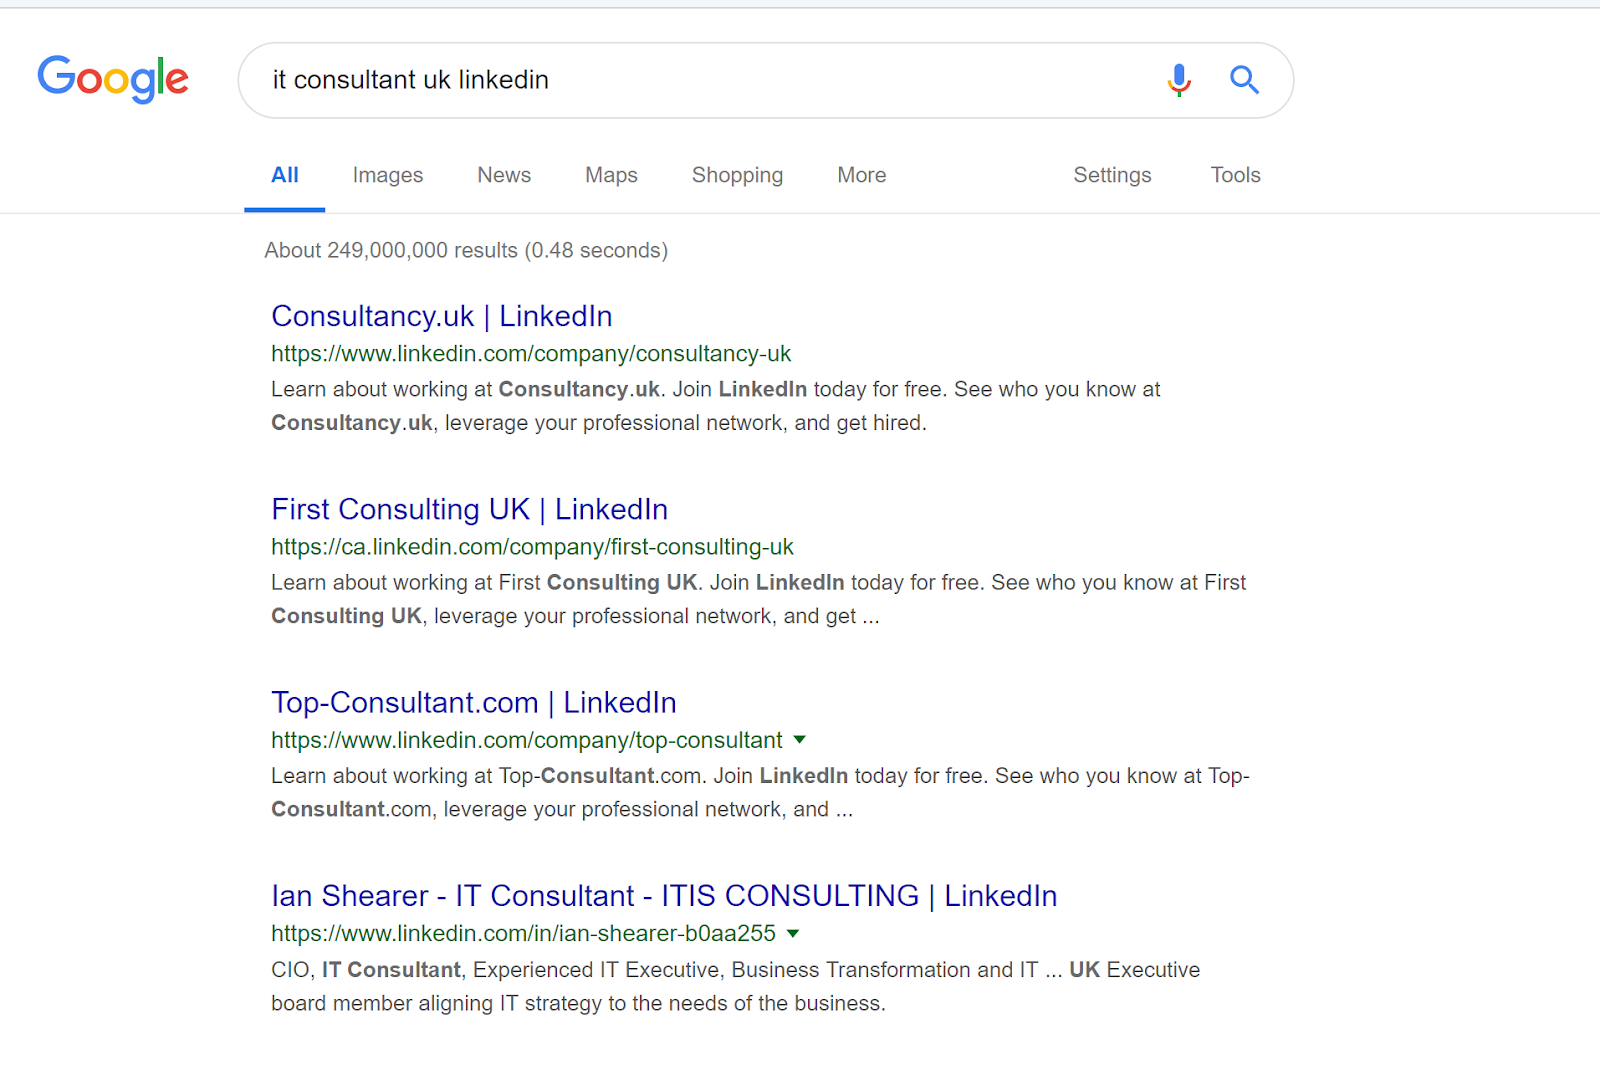 Google Search for IT Consultant UK LinkedIn